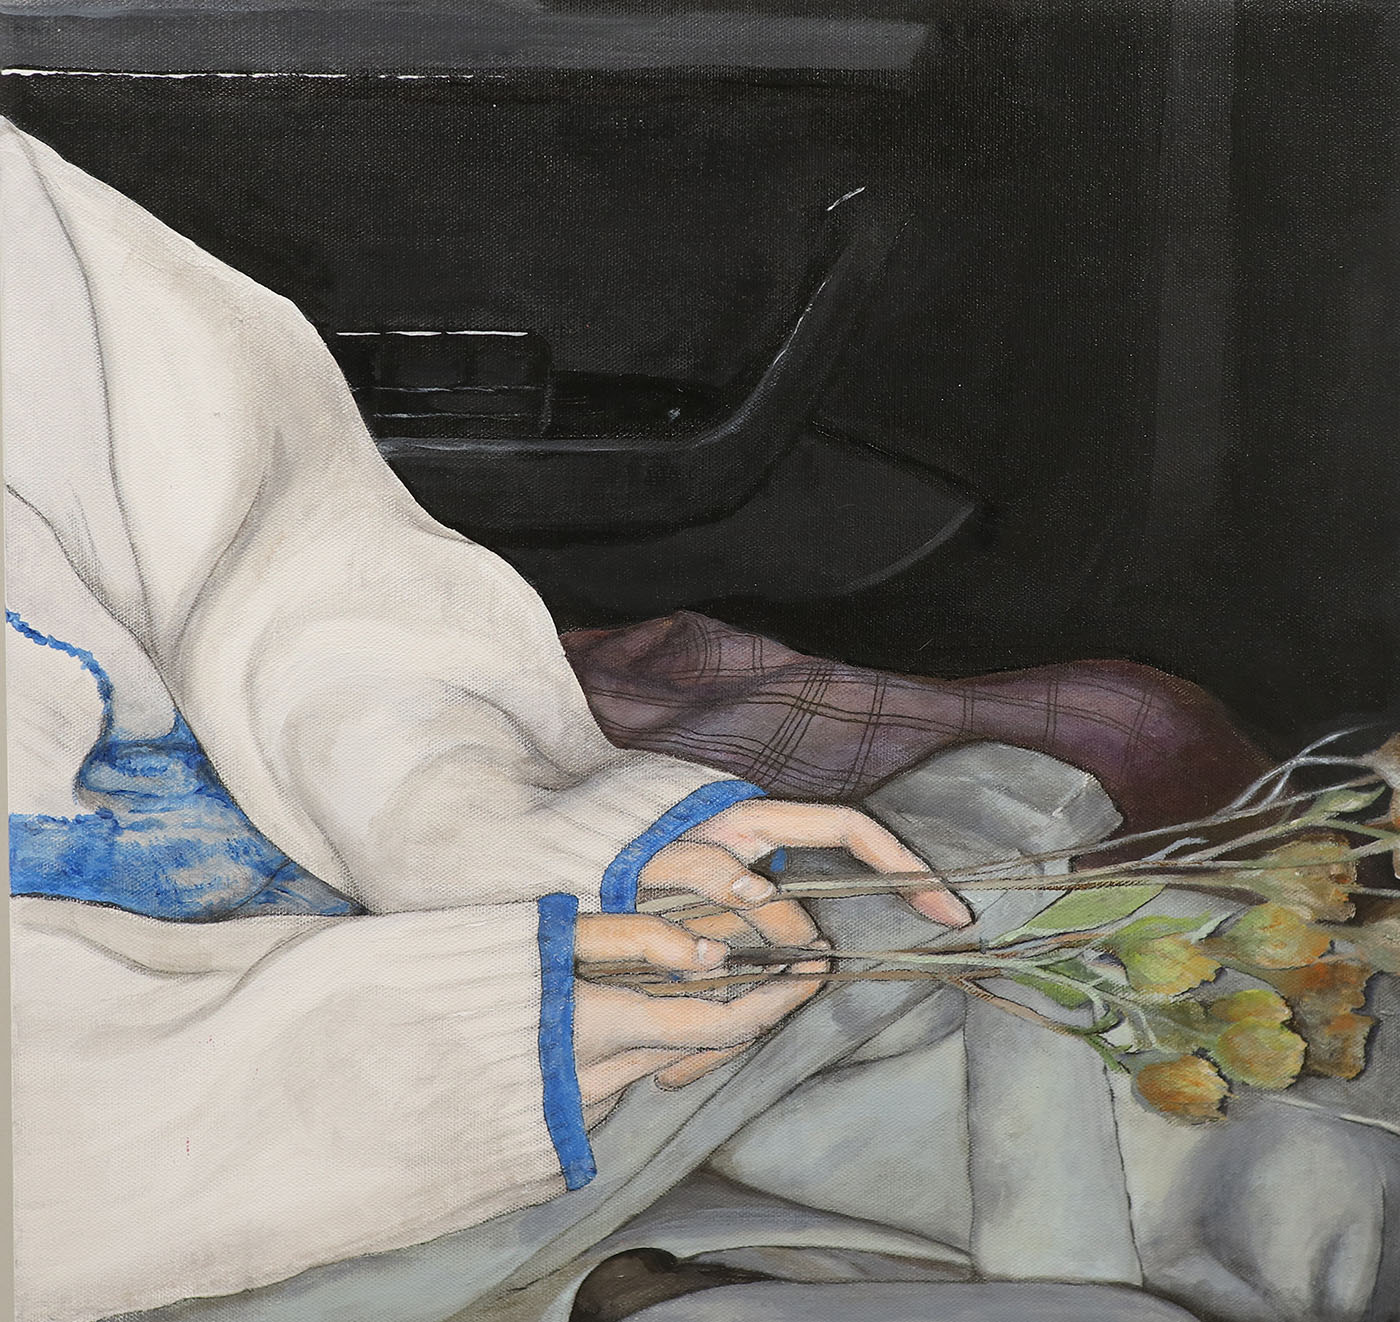 Painting of seated figure in a car holding wilted flowers.